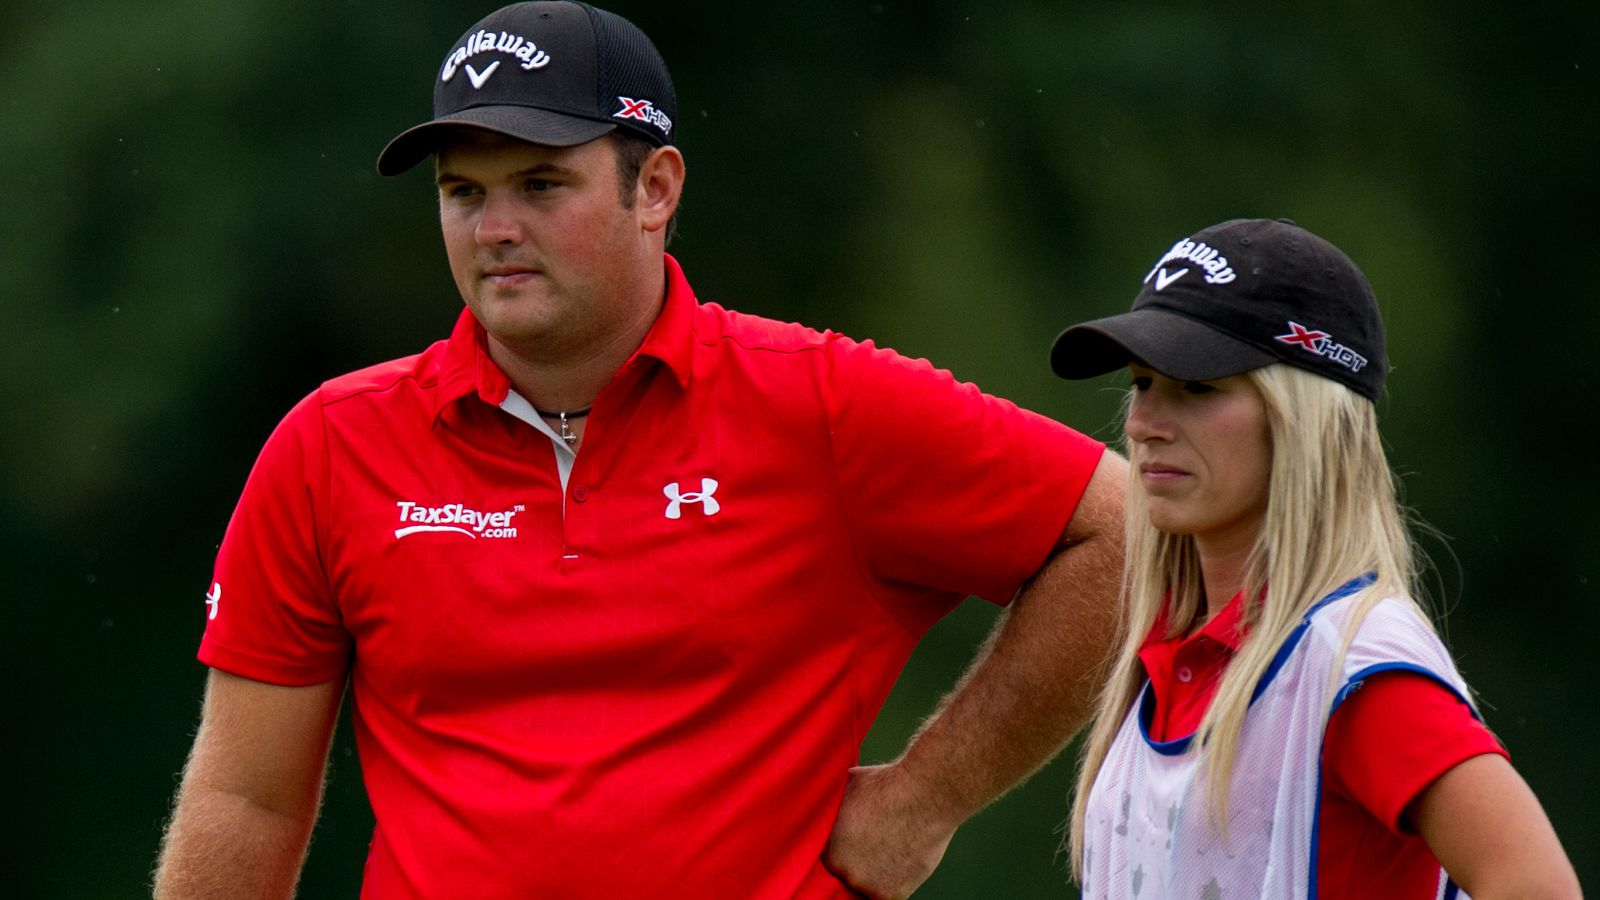 Patrick Reed To Play In Franklin Templeton Shootout After